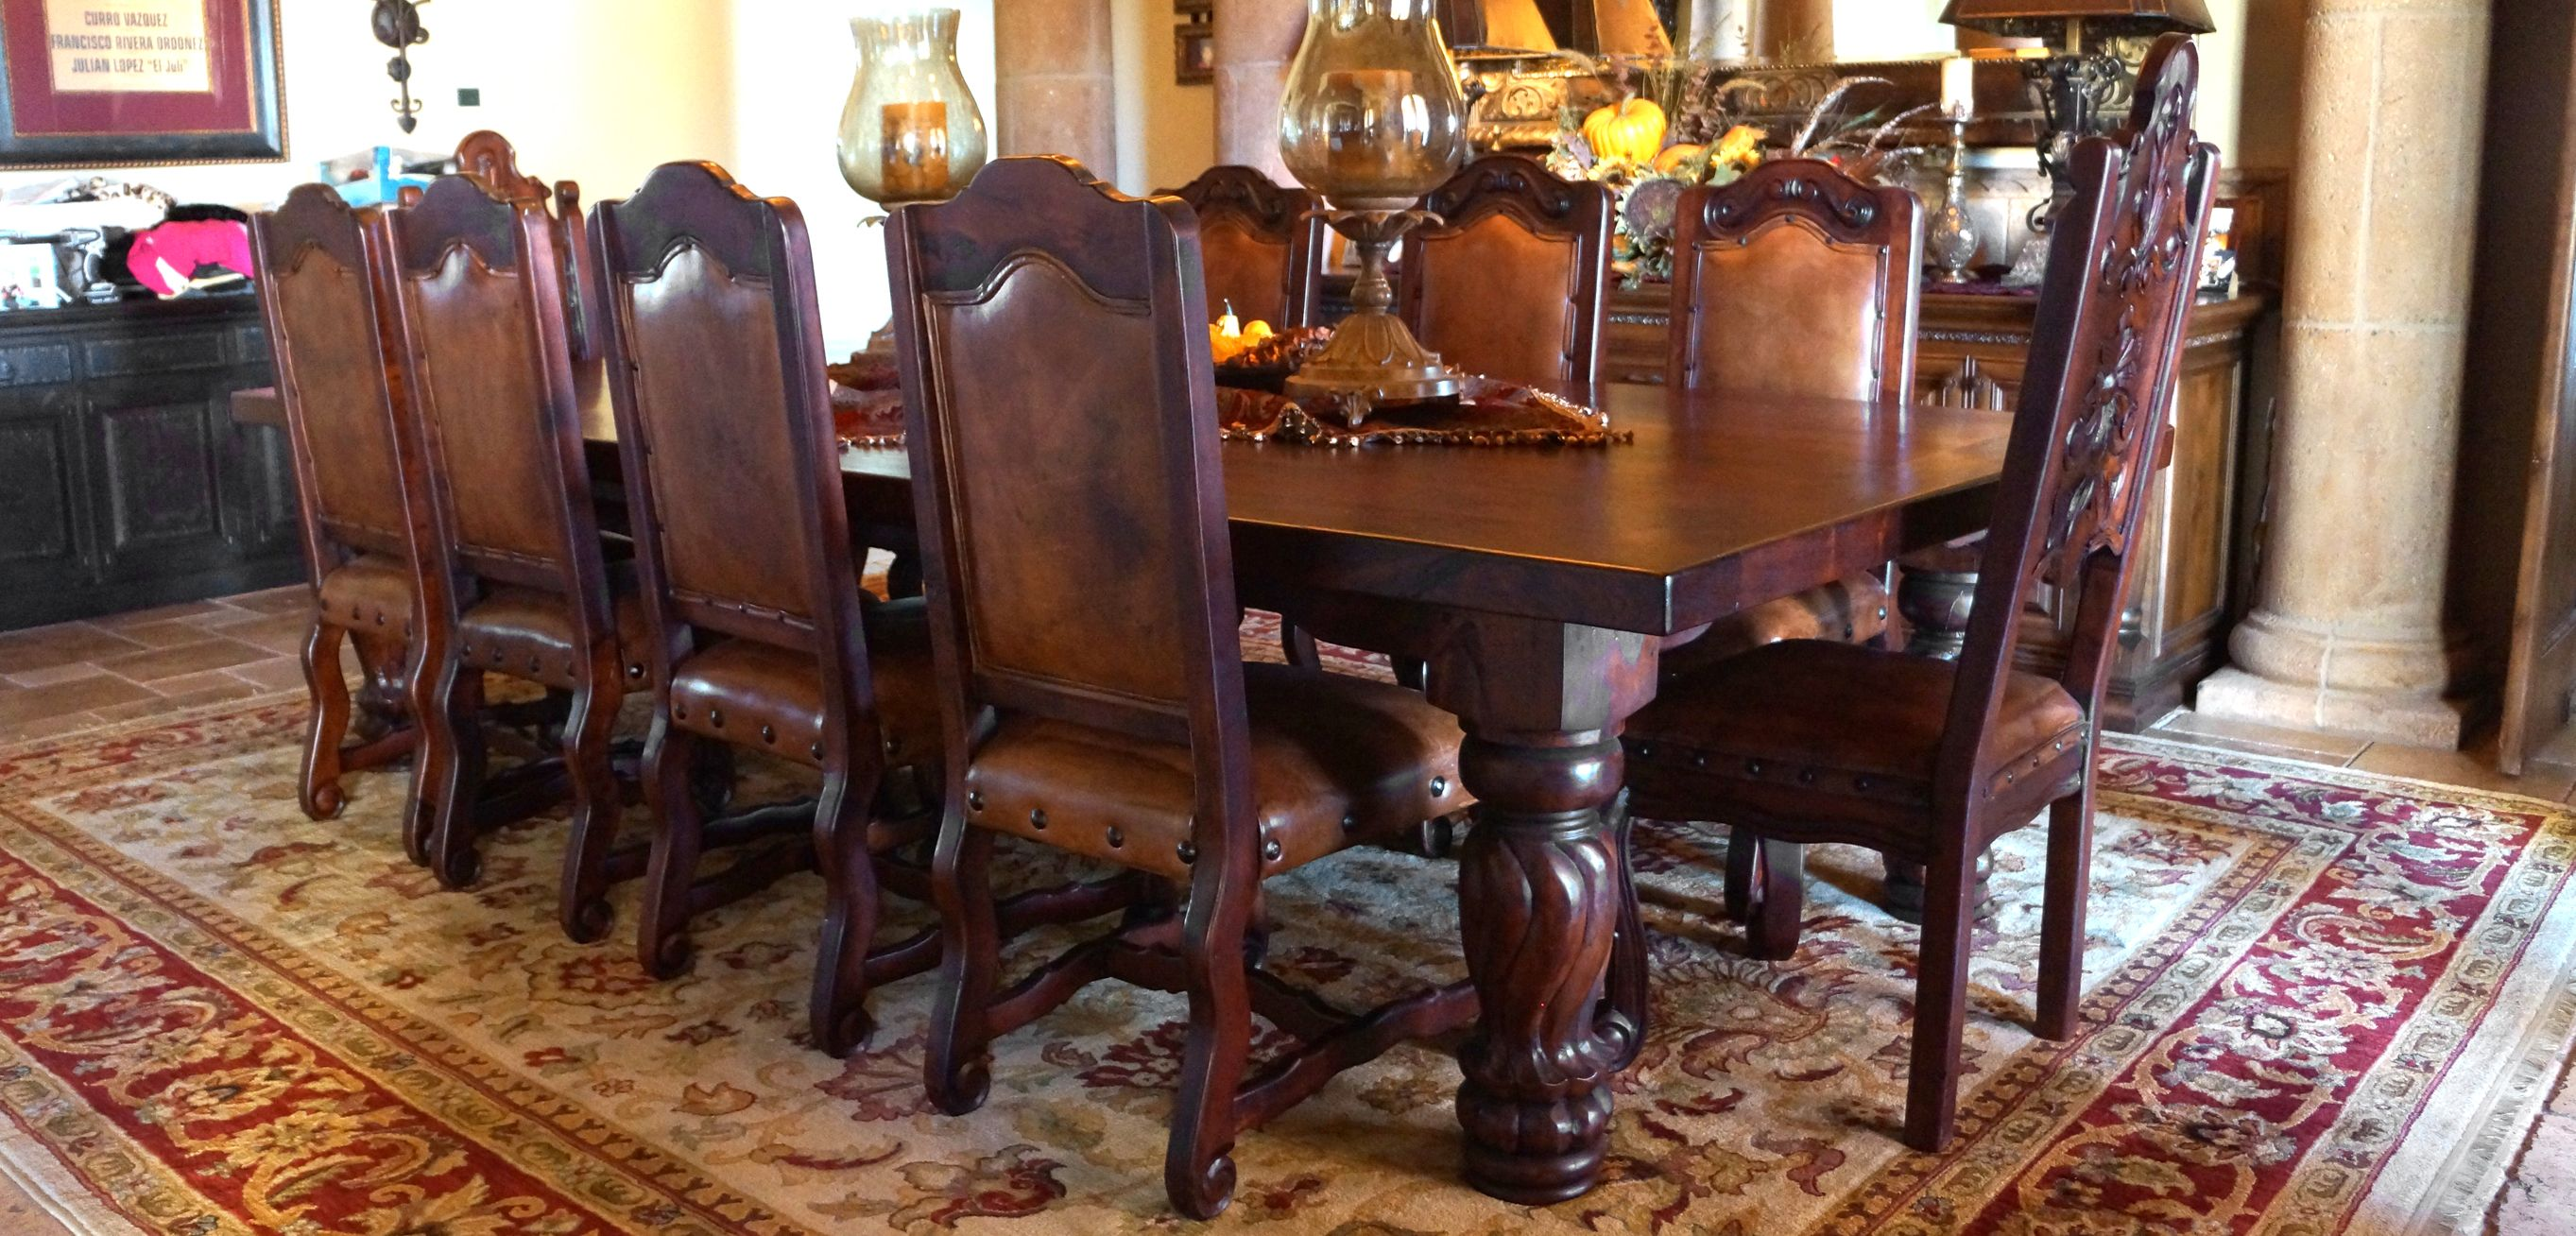 3 Furnishing Mexican Furniture Rustic Dining Room Sets Mexican